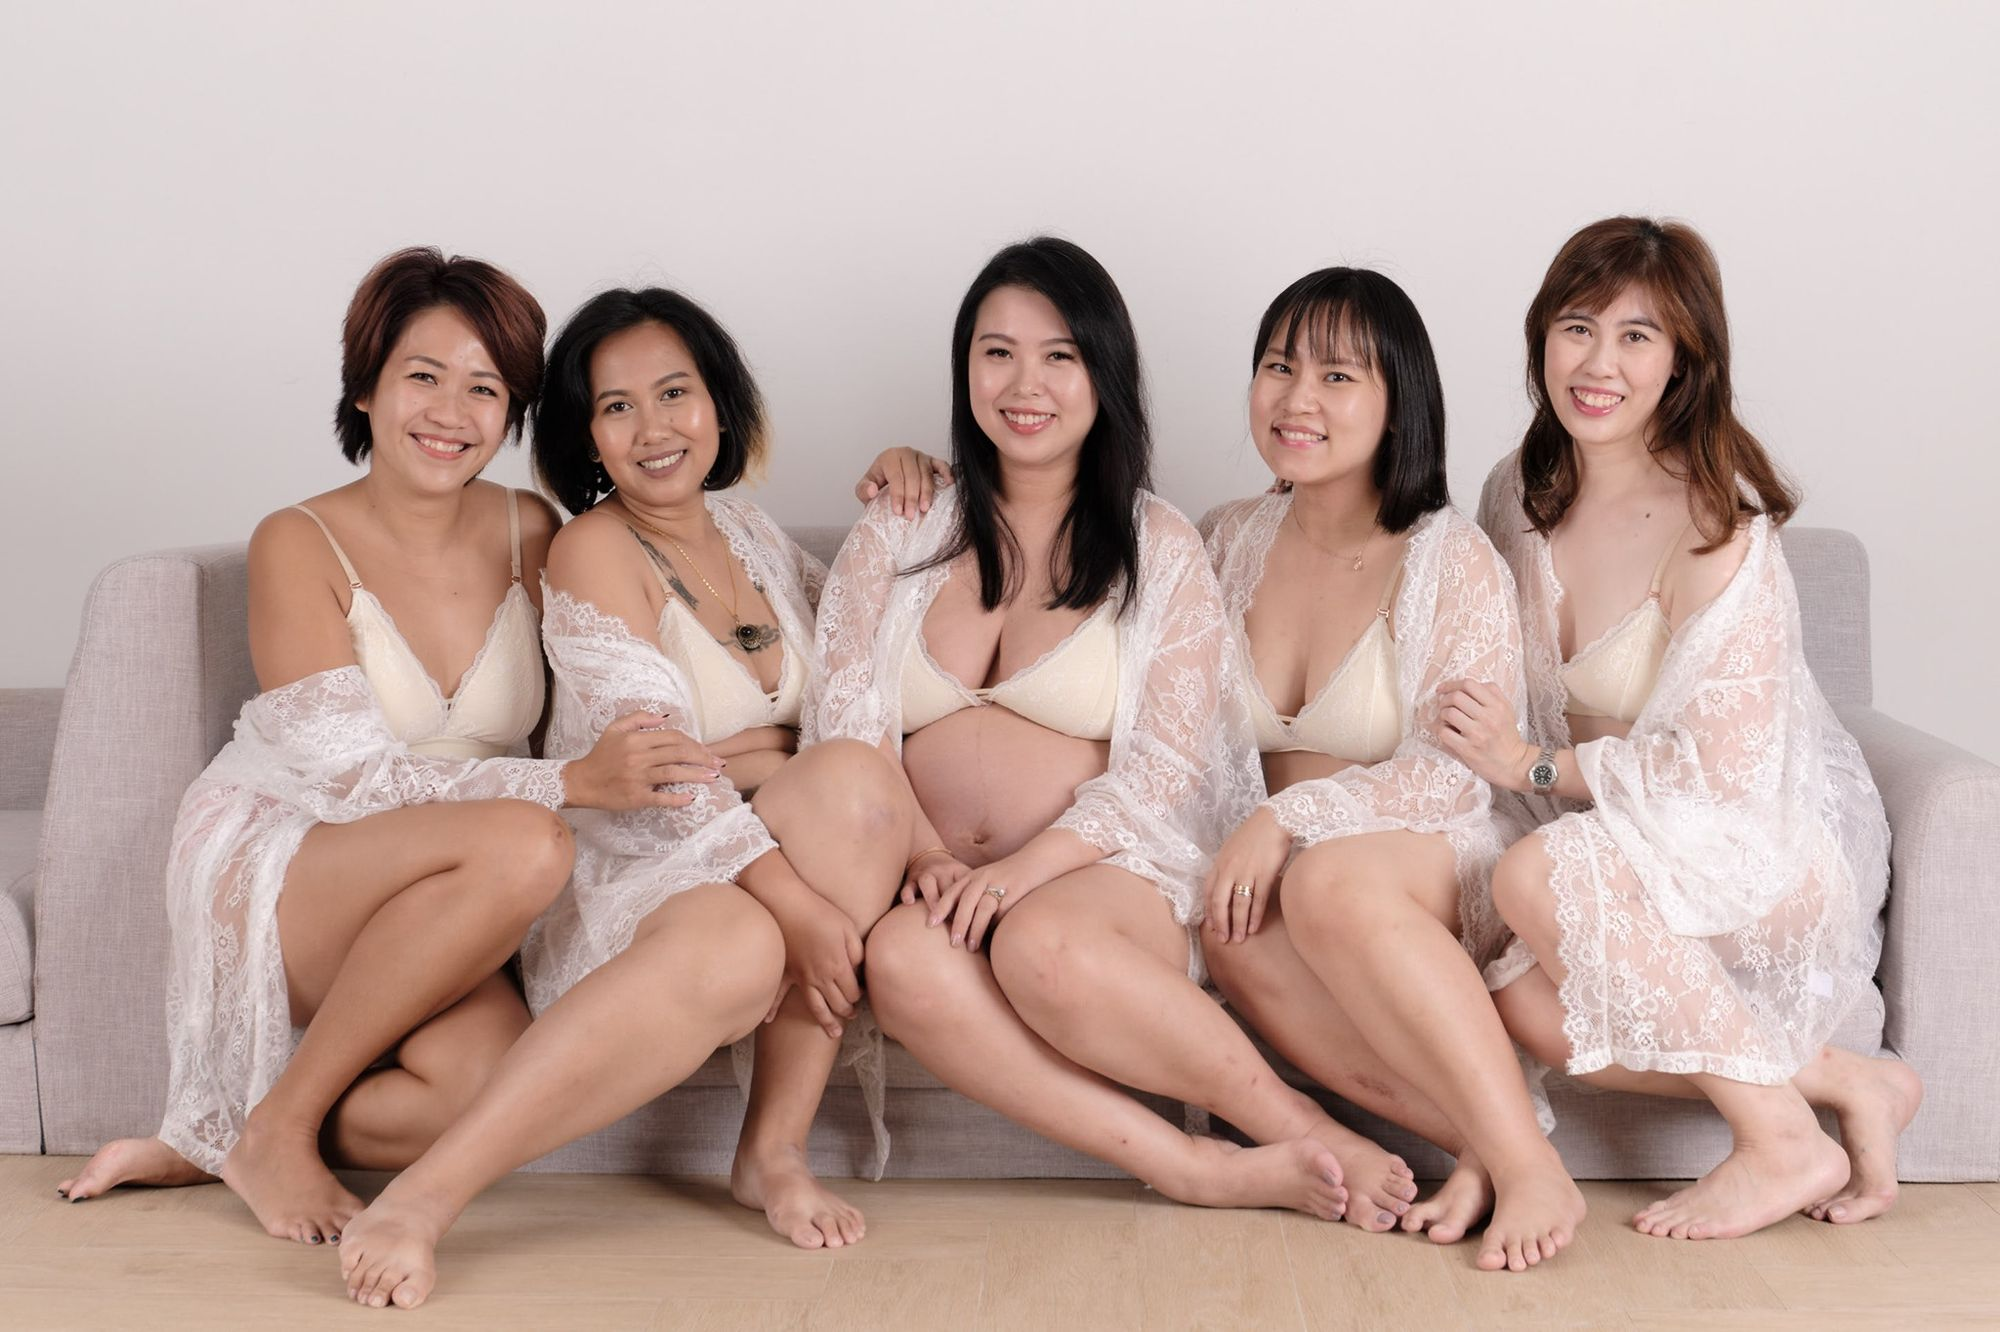 Ladies in lingerie from Our Bralette Club